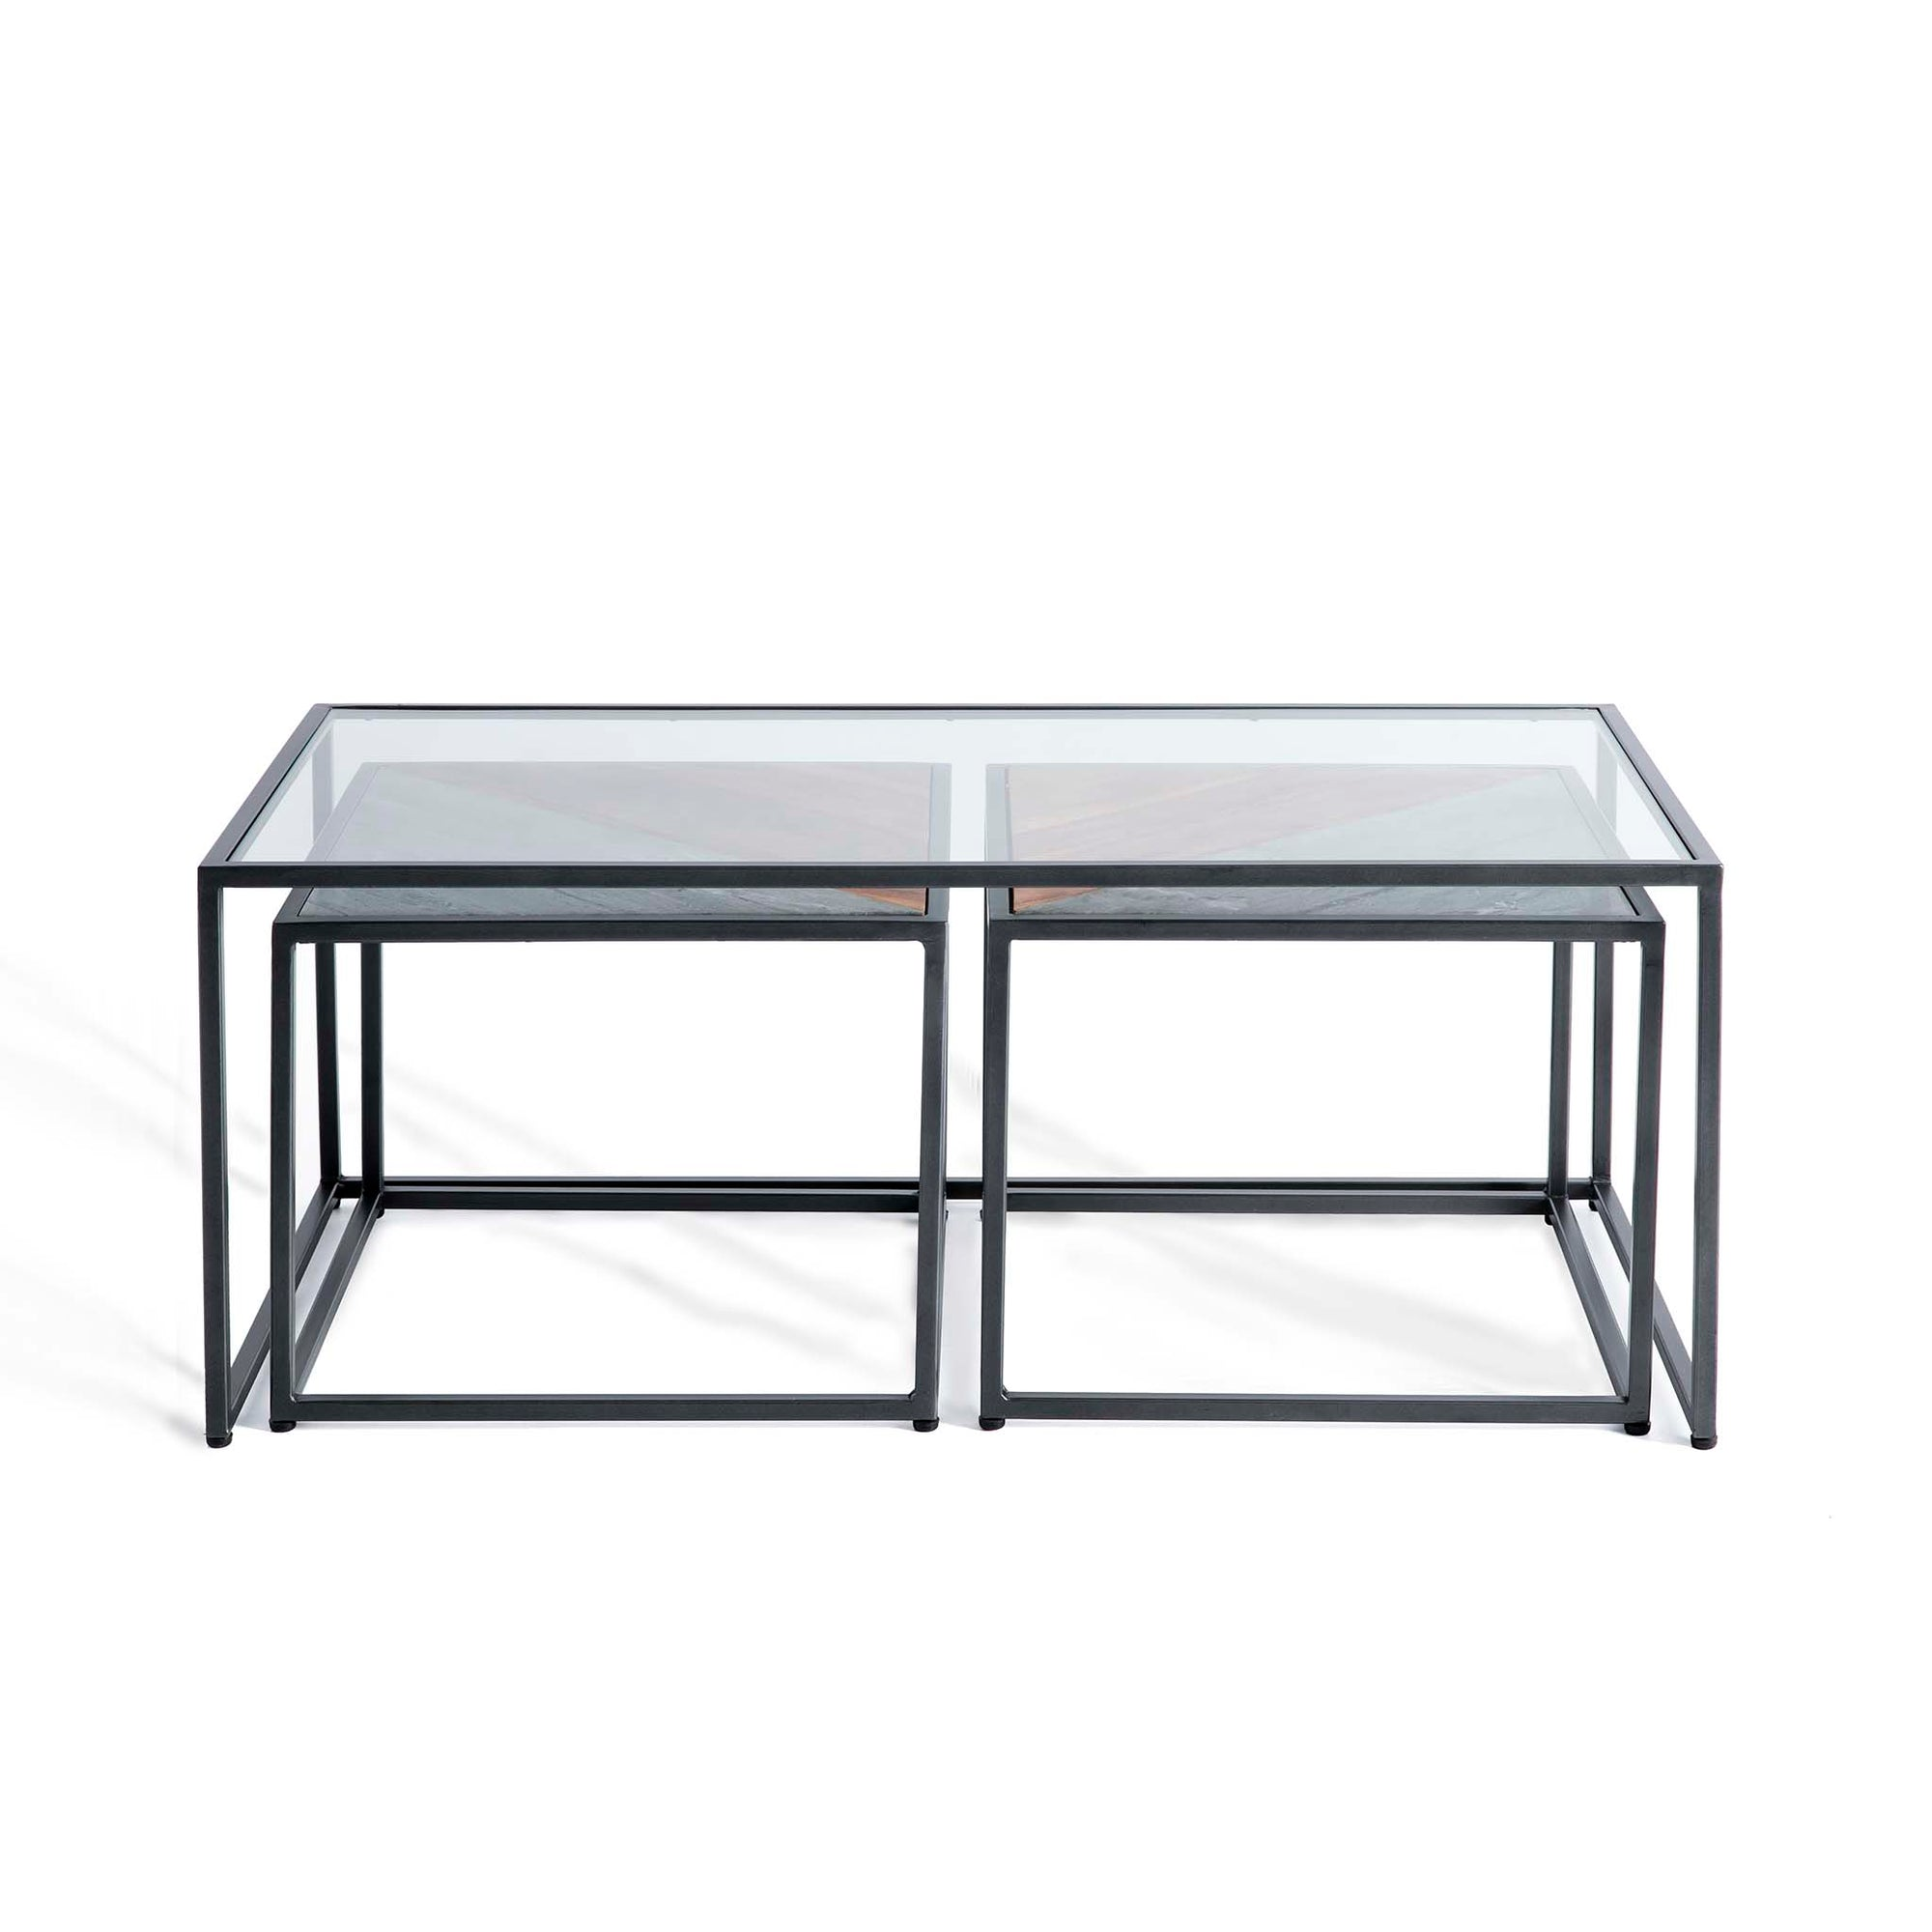 Kandla Glass Topped Coffee Table with Grey Marble & Wood Nested Tables and grey Bases by Roseland Furniture